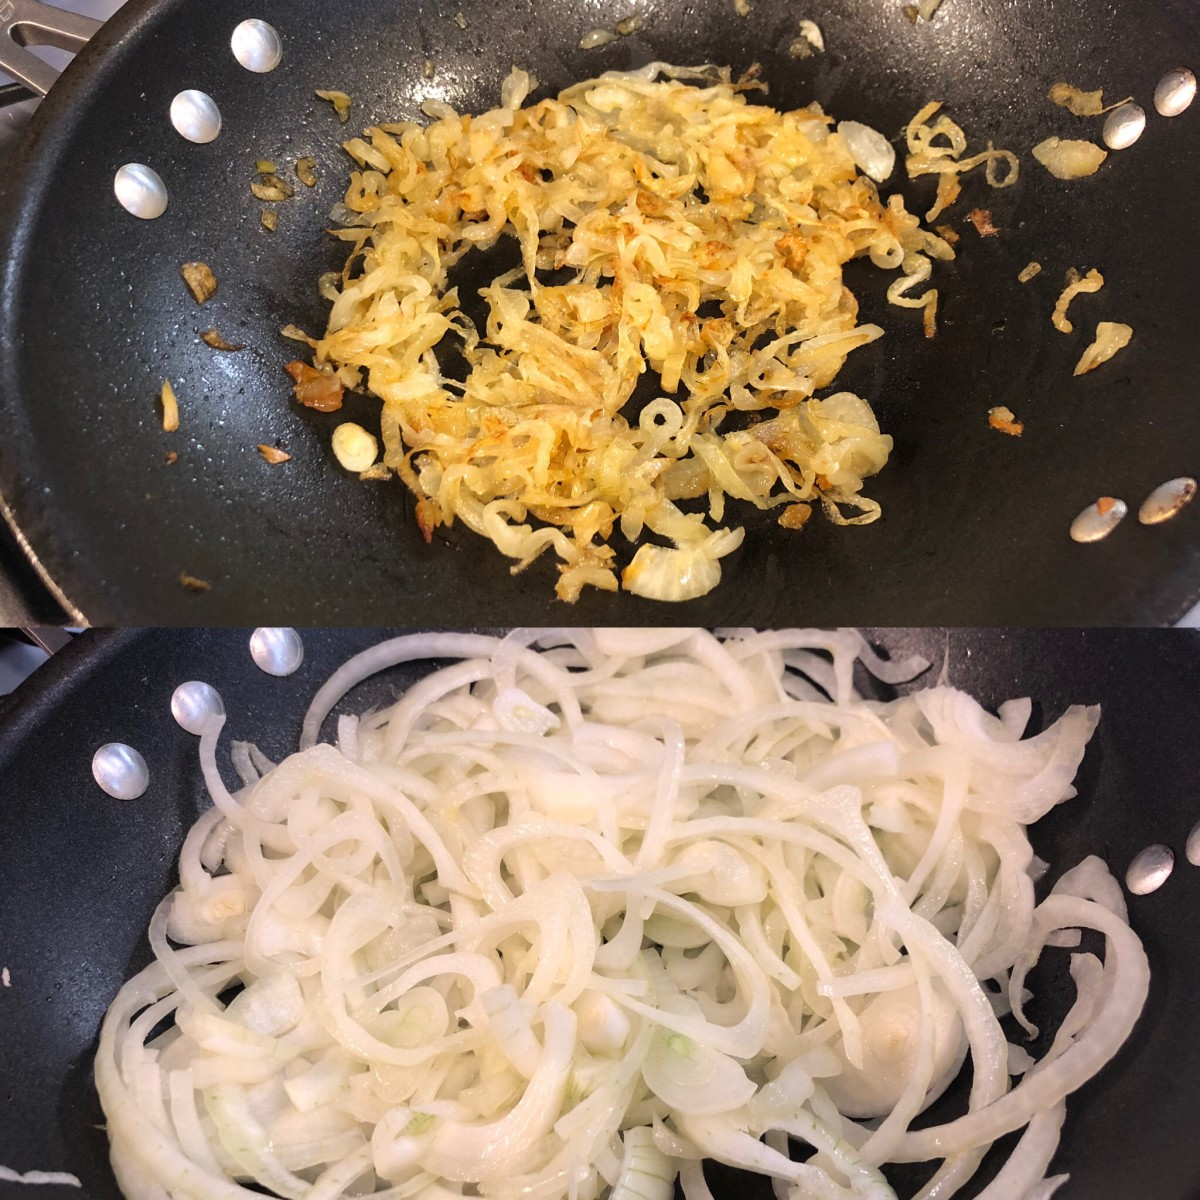 Before (bottom): The raw onions fill up the entire pan. After (top): The onions will reduce down significantly after an hour of cooking.